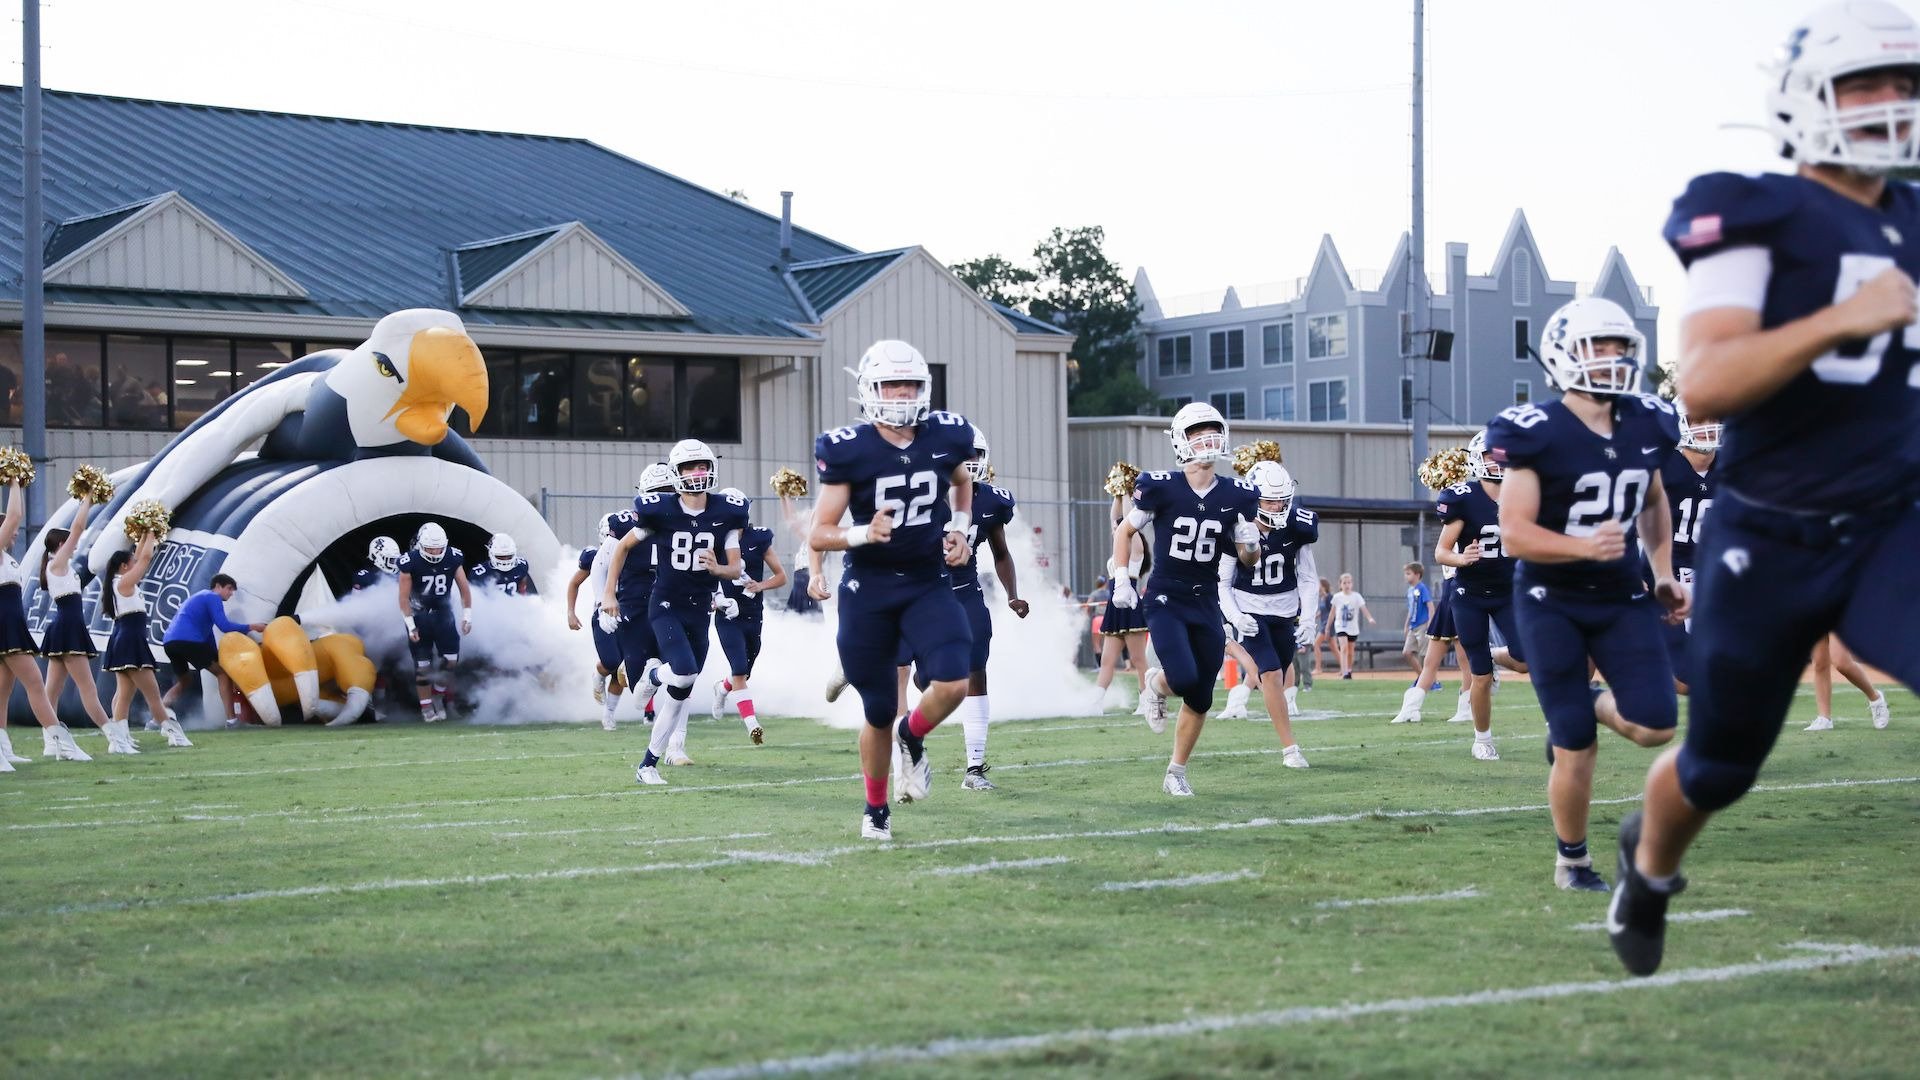 Football players running out of the eagle and onto the field for a game at SBS